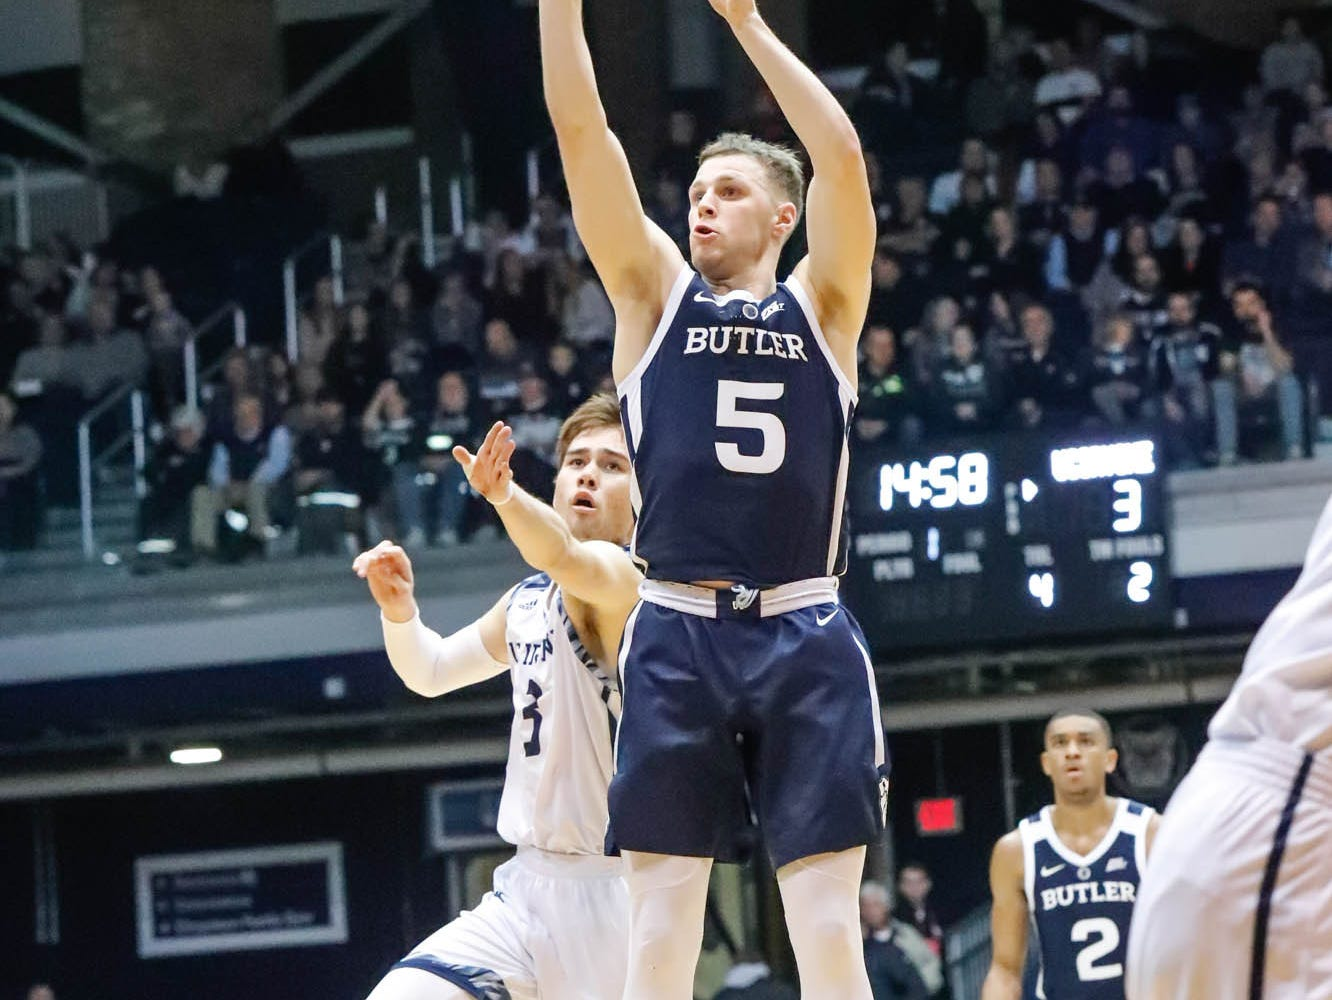 Butler University's guard Paul Jorgensen (5) hits a three point shot against UC Irvine's guard Robert Cartwright (3), during a game between Butler University and UC Irvine, at Hinkle Fieldhouse on Friday, Dec. 21, 2018.